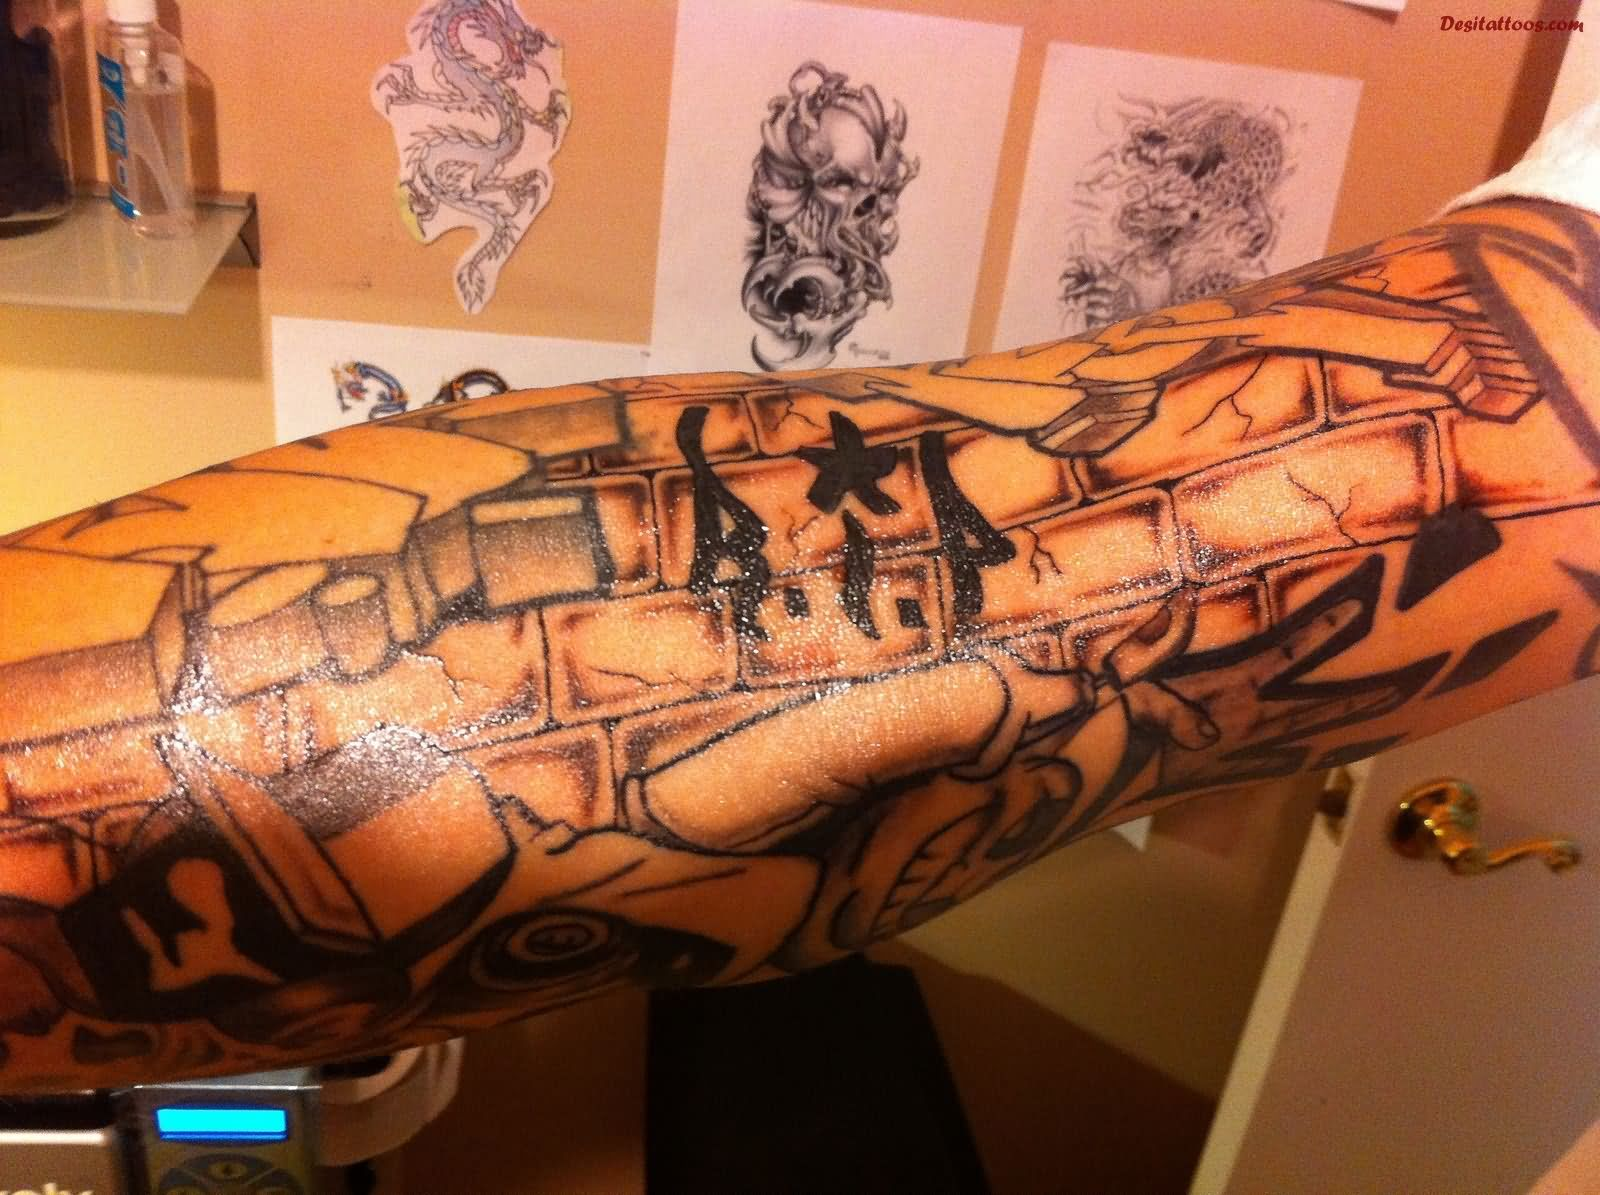 30 Graffiti Tattoo Images Pictures And Designs Ideas